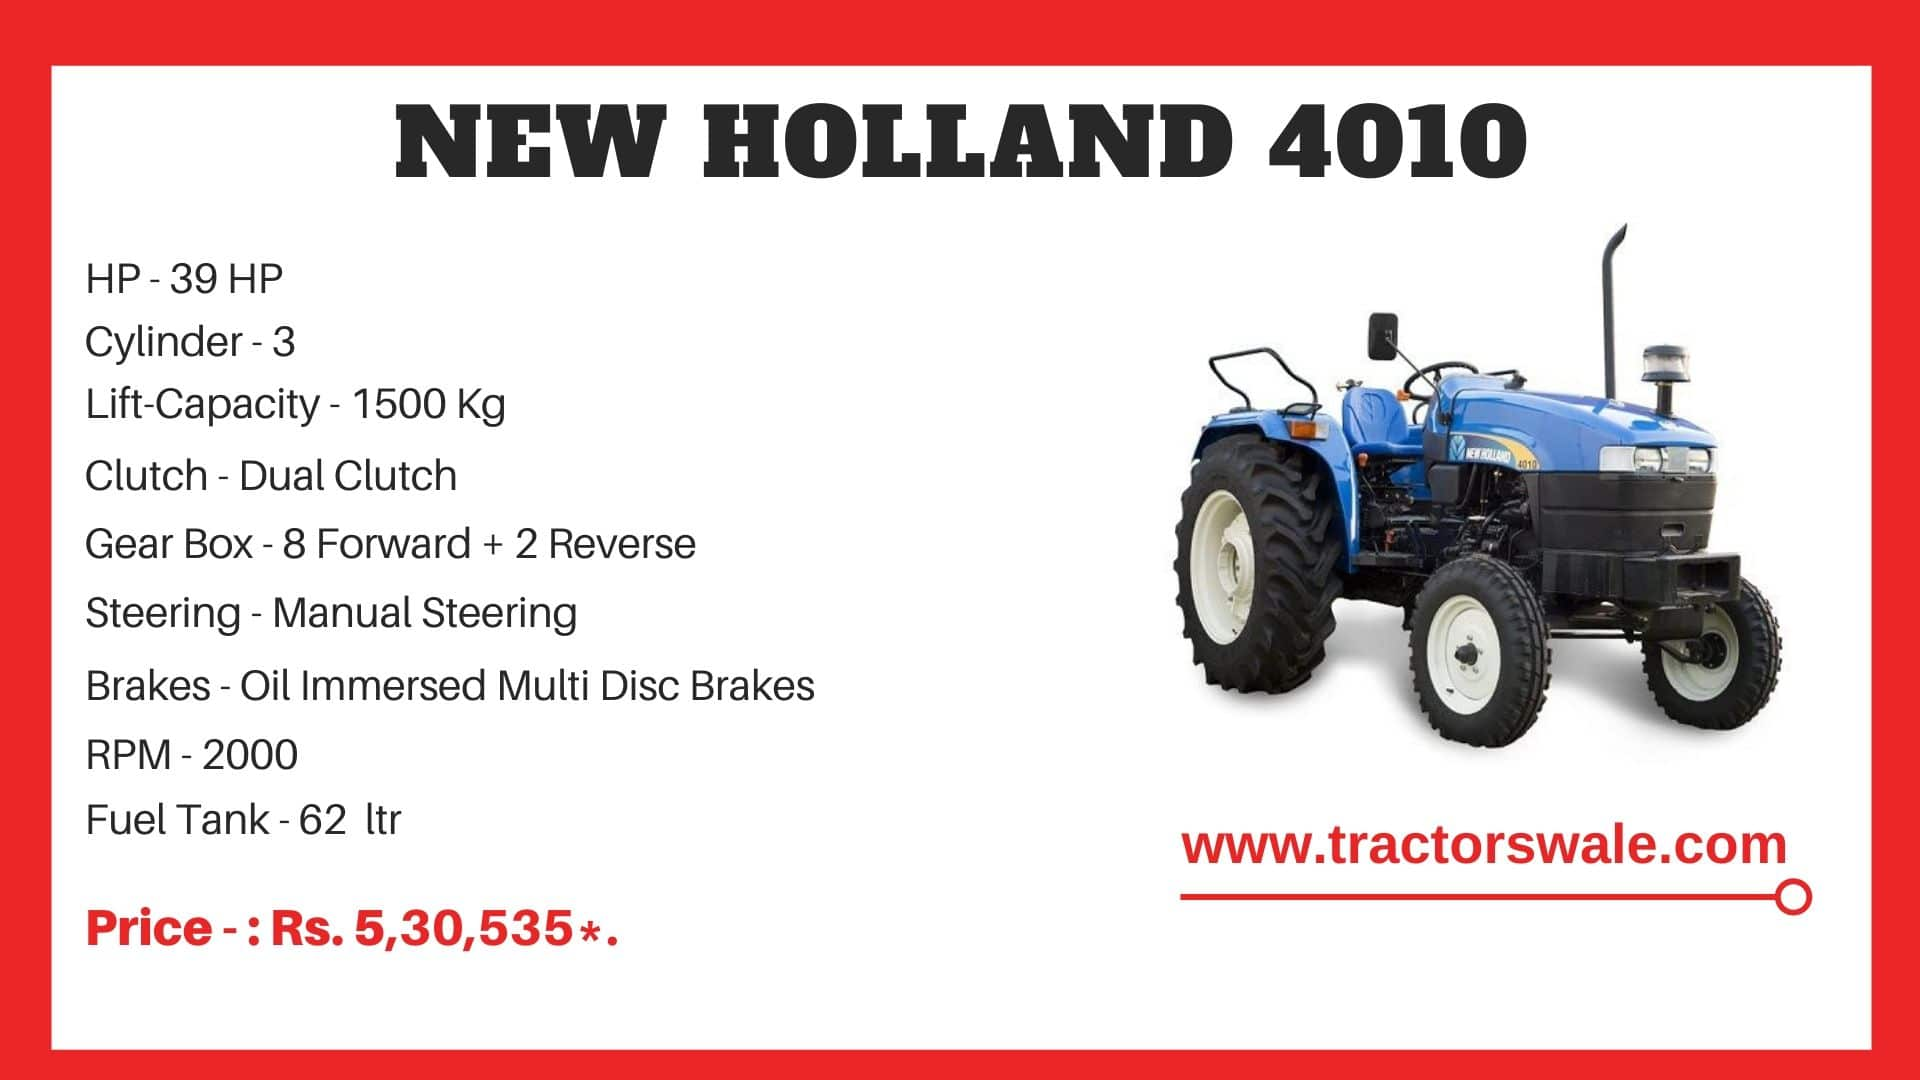 New Holland 4010 tractor specs